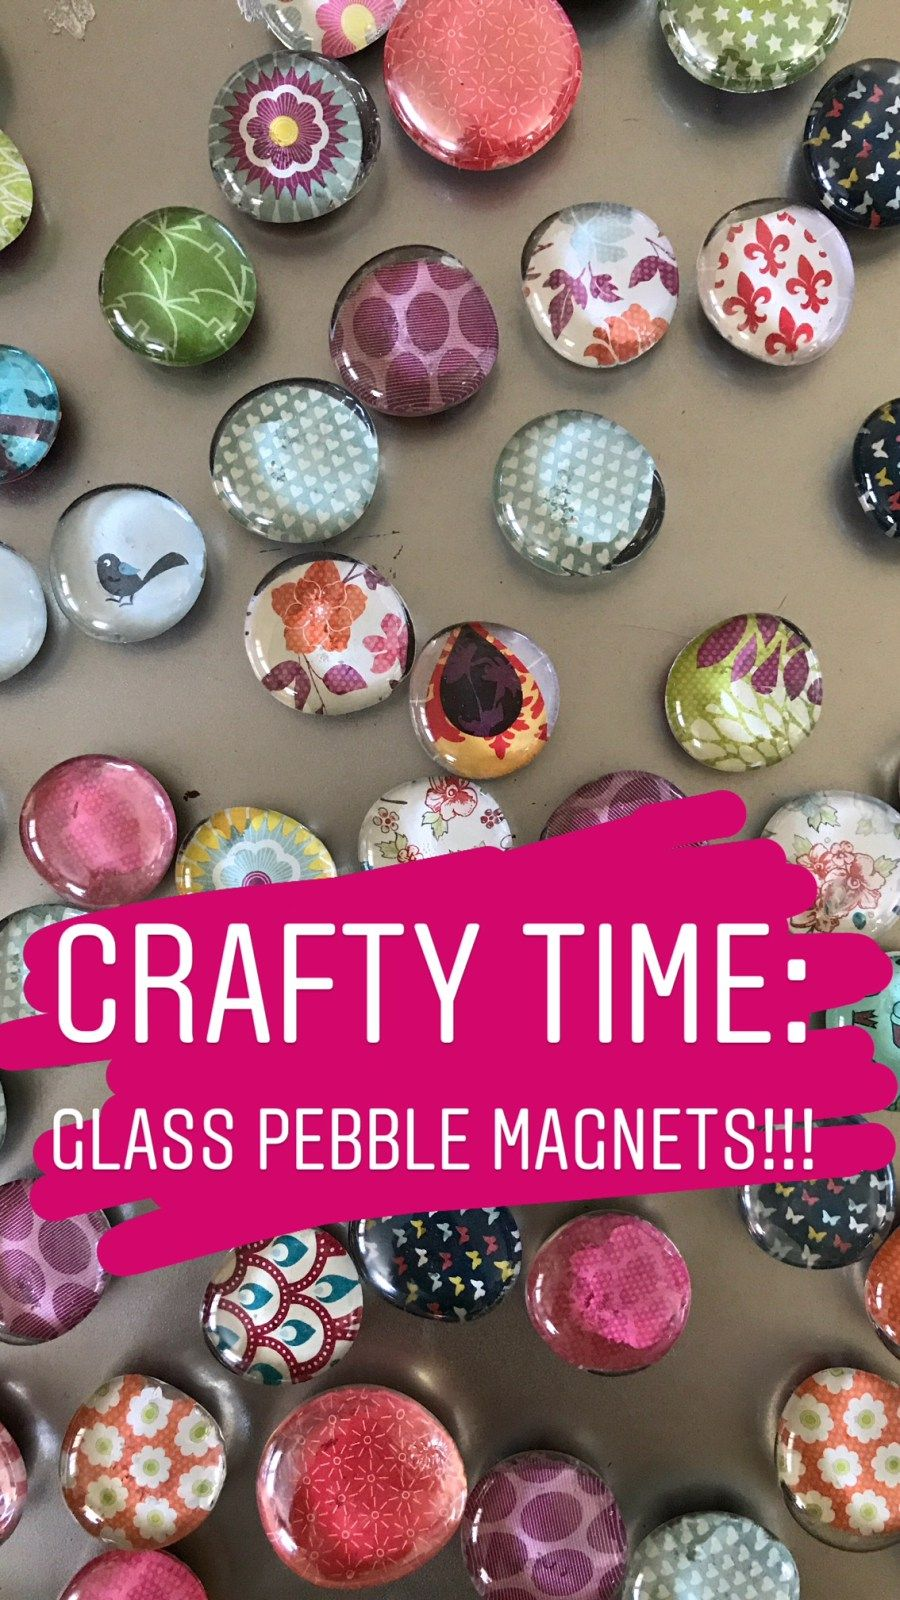 Glass Pebble Magnets: How to Make, Personalize, Pa